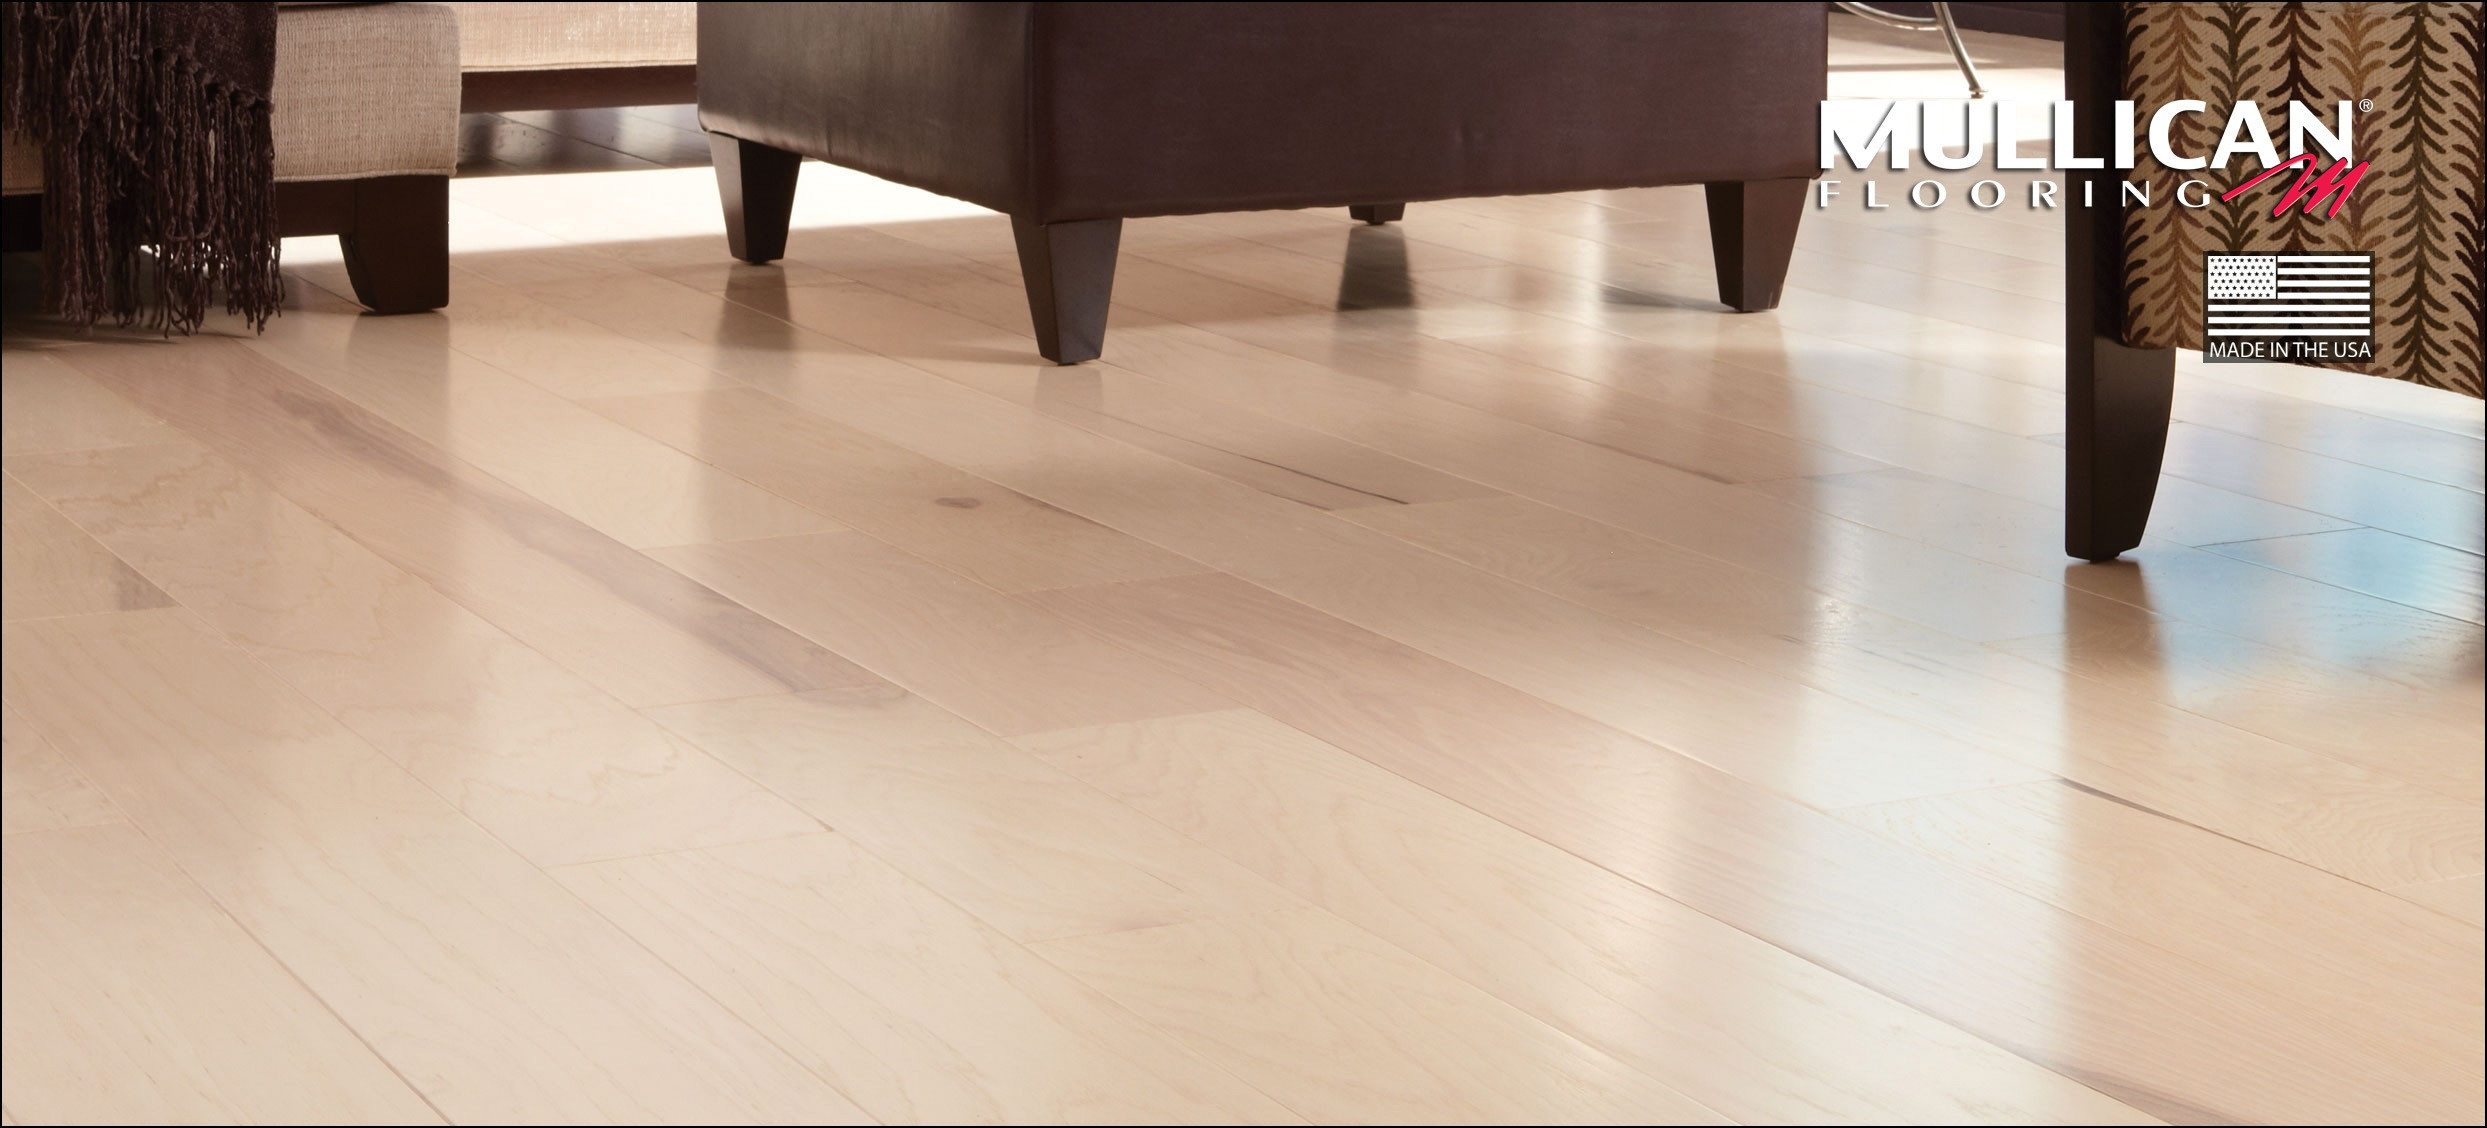 kent hardwood flooring of hardwood flooring suppliers france flooring ideas pertaining to hardwood flooring installation san diego mullican flooring home of hardwood flooring installation san diego